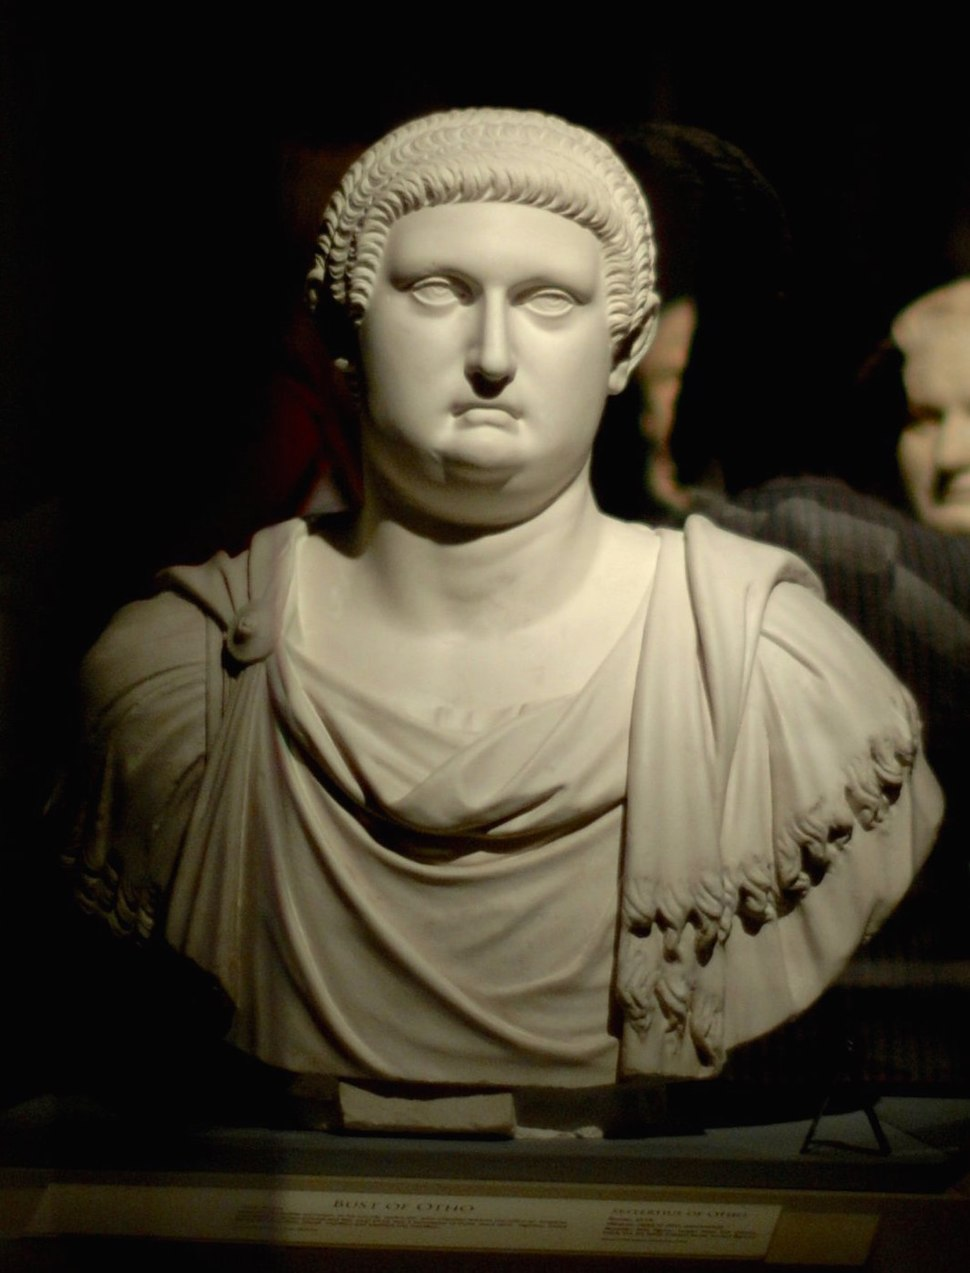 Bust depicting a man with a full head of hair wearing a Roman tunic